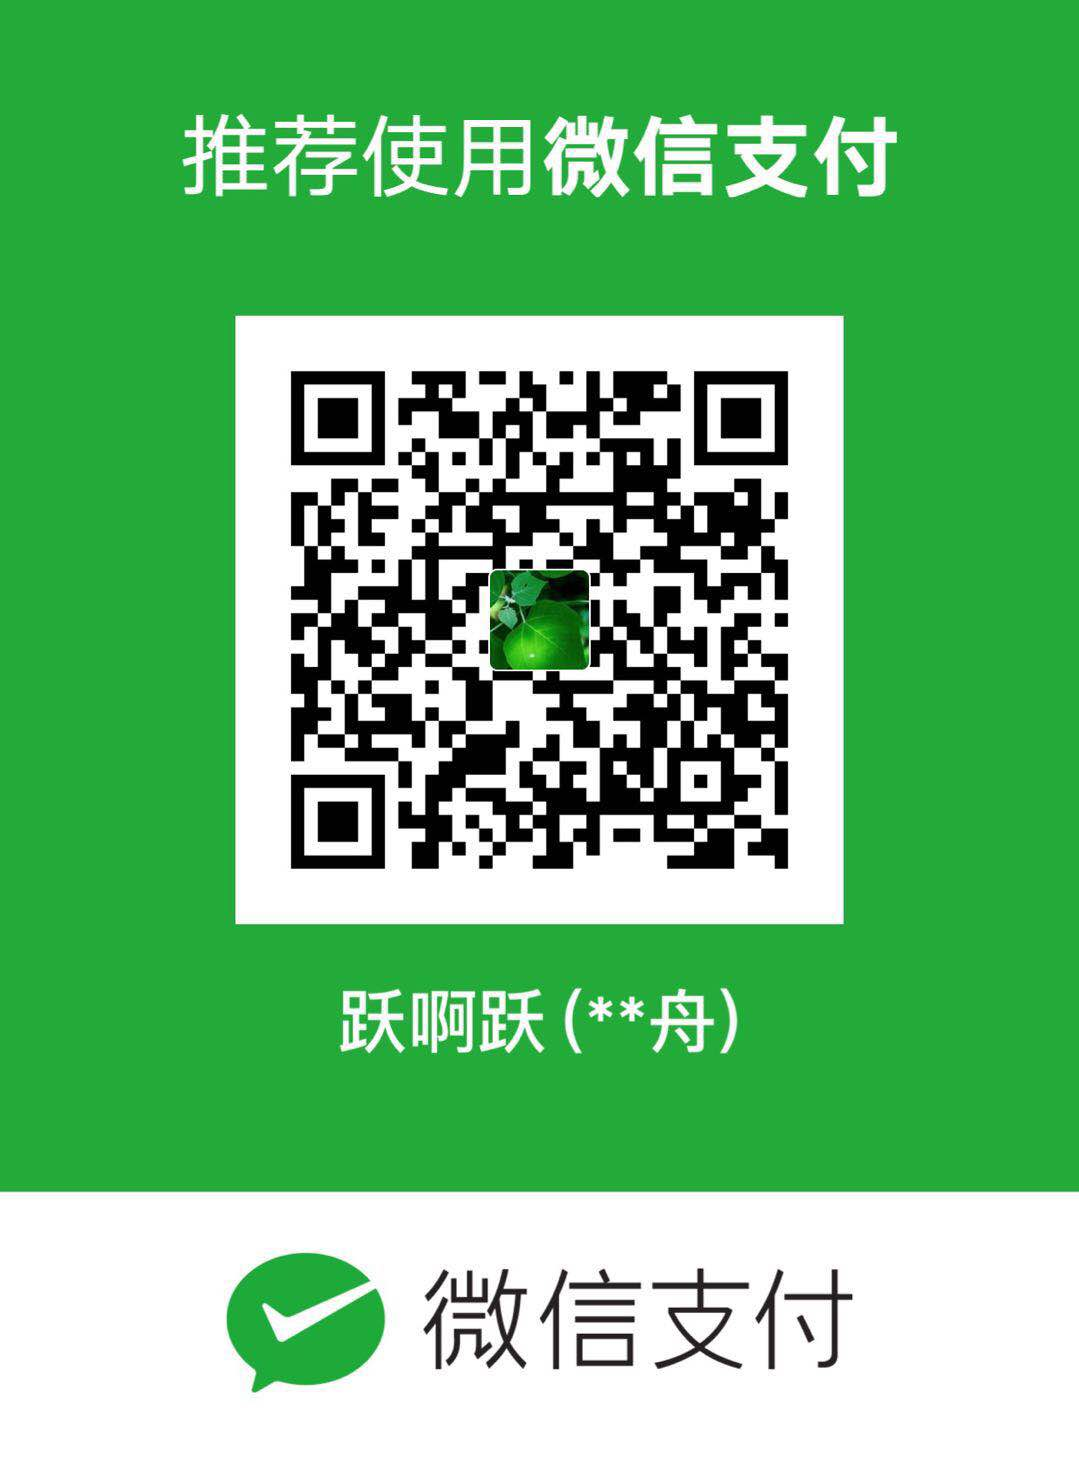 大船 WeChat Pay